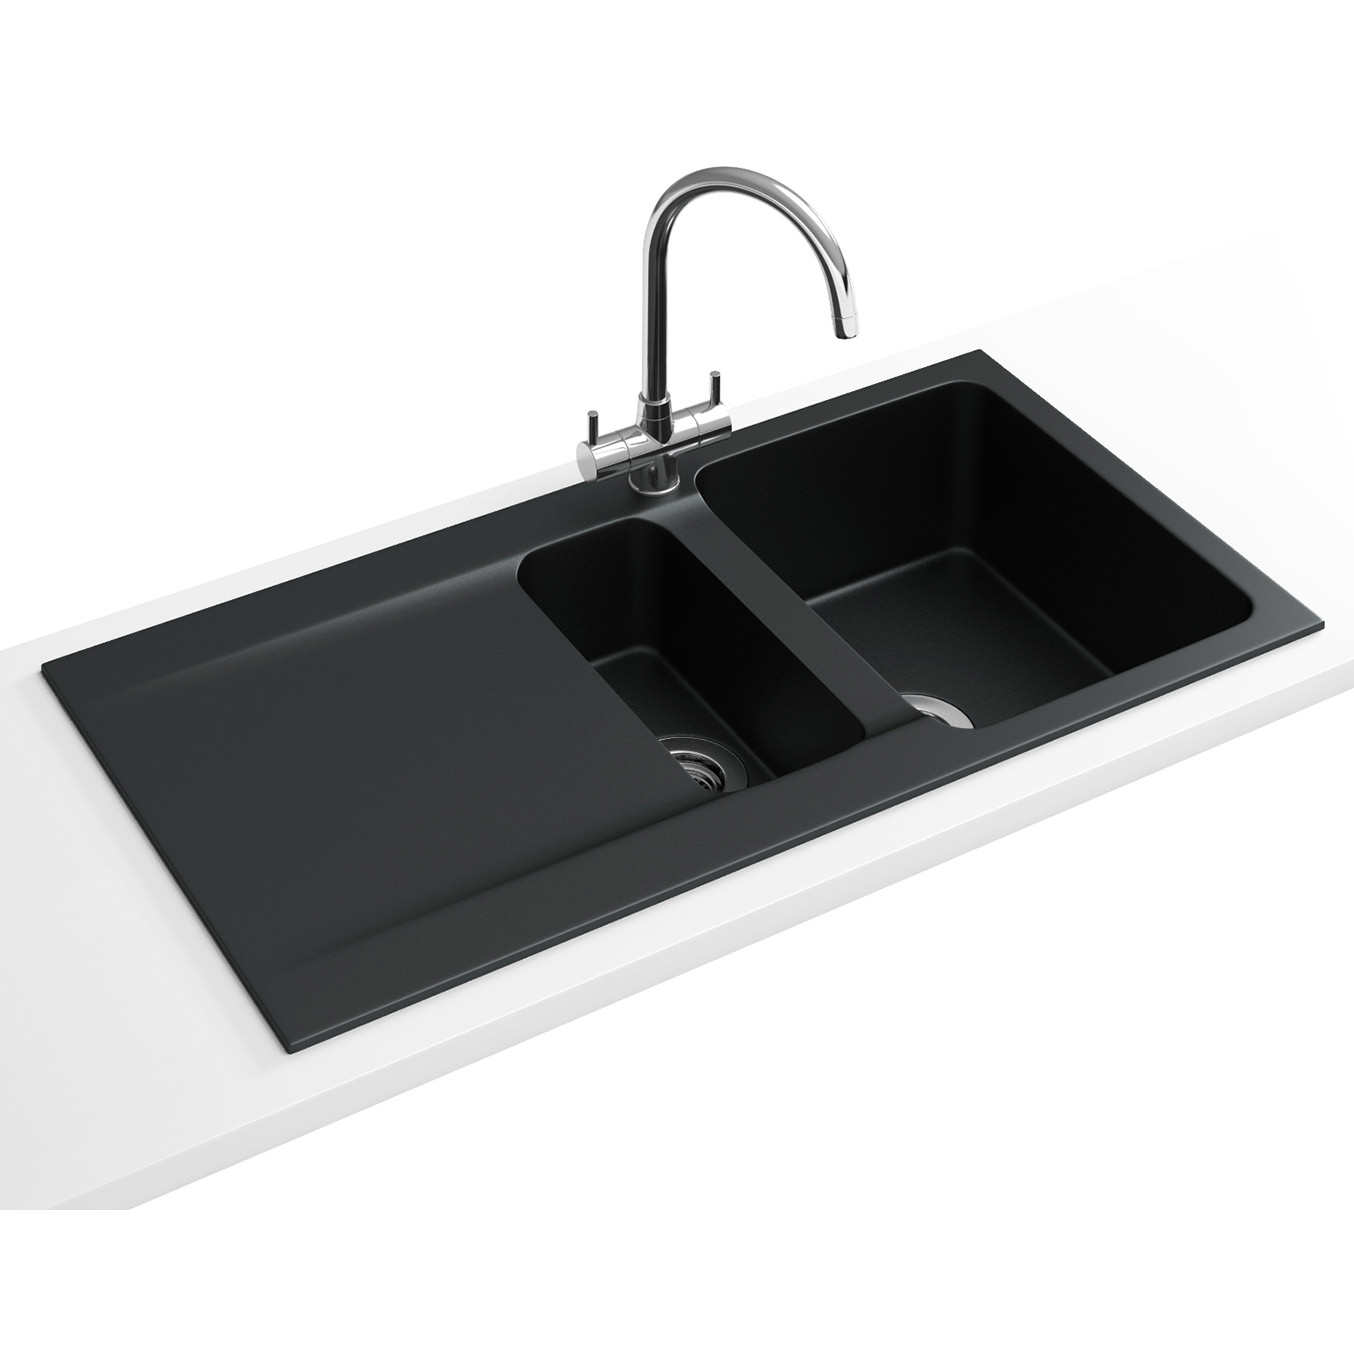 Franke Black Kitchen Sink: Franke Orion OID 651 Tectonite Carbon Black 1.5 Bowl Inset